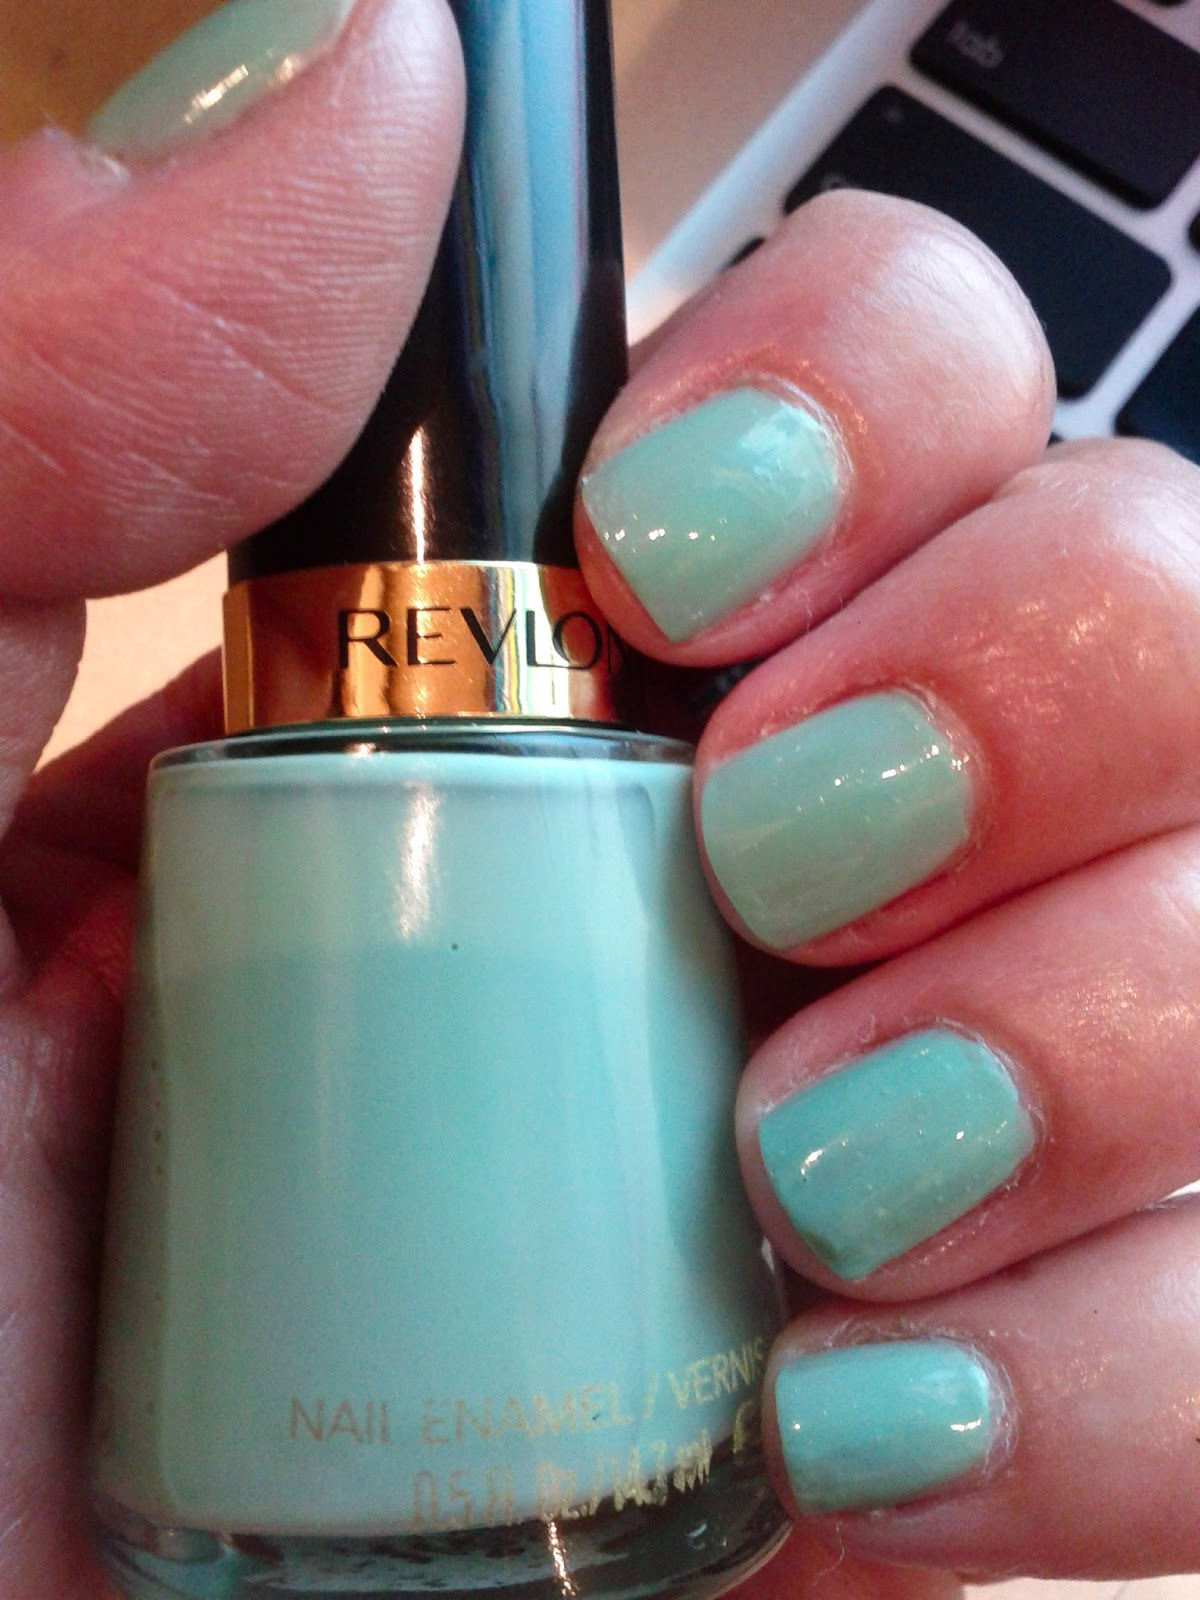 Revlon nail varnish colours day chipfree nails wearing high sponsored post revlon photoready bb cream u nail polish review nvjuhfo Image collections